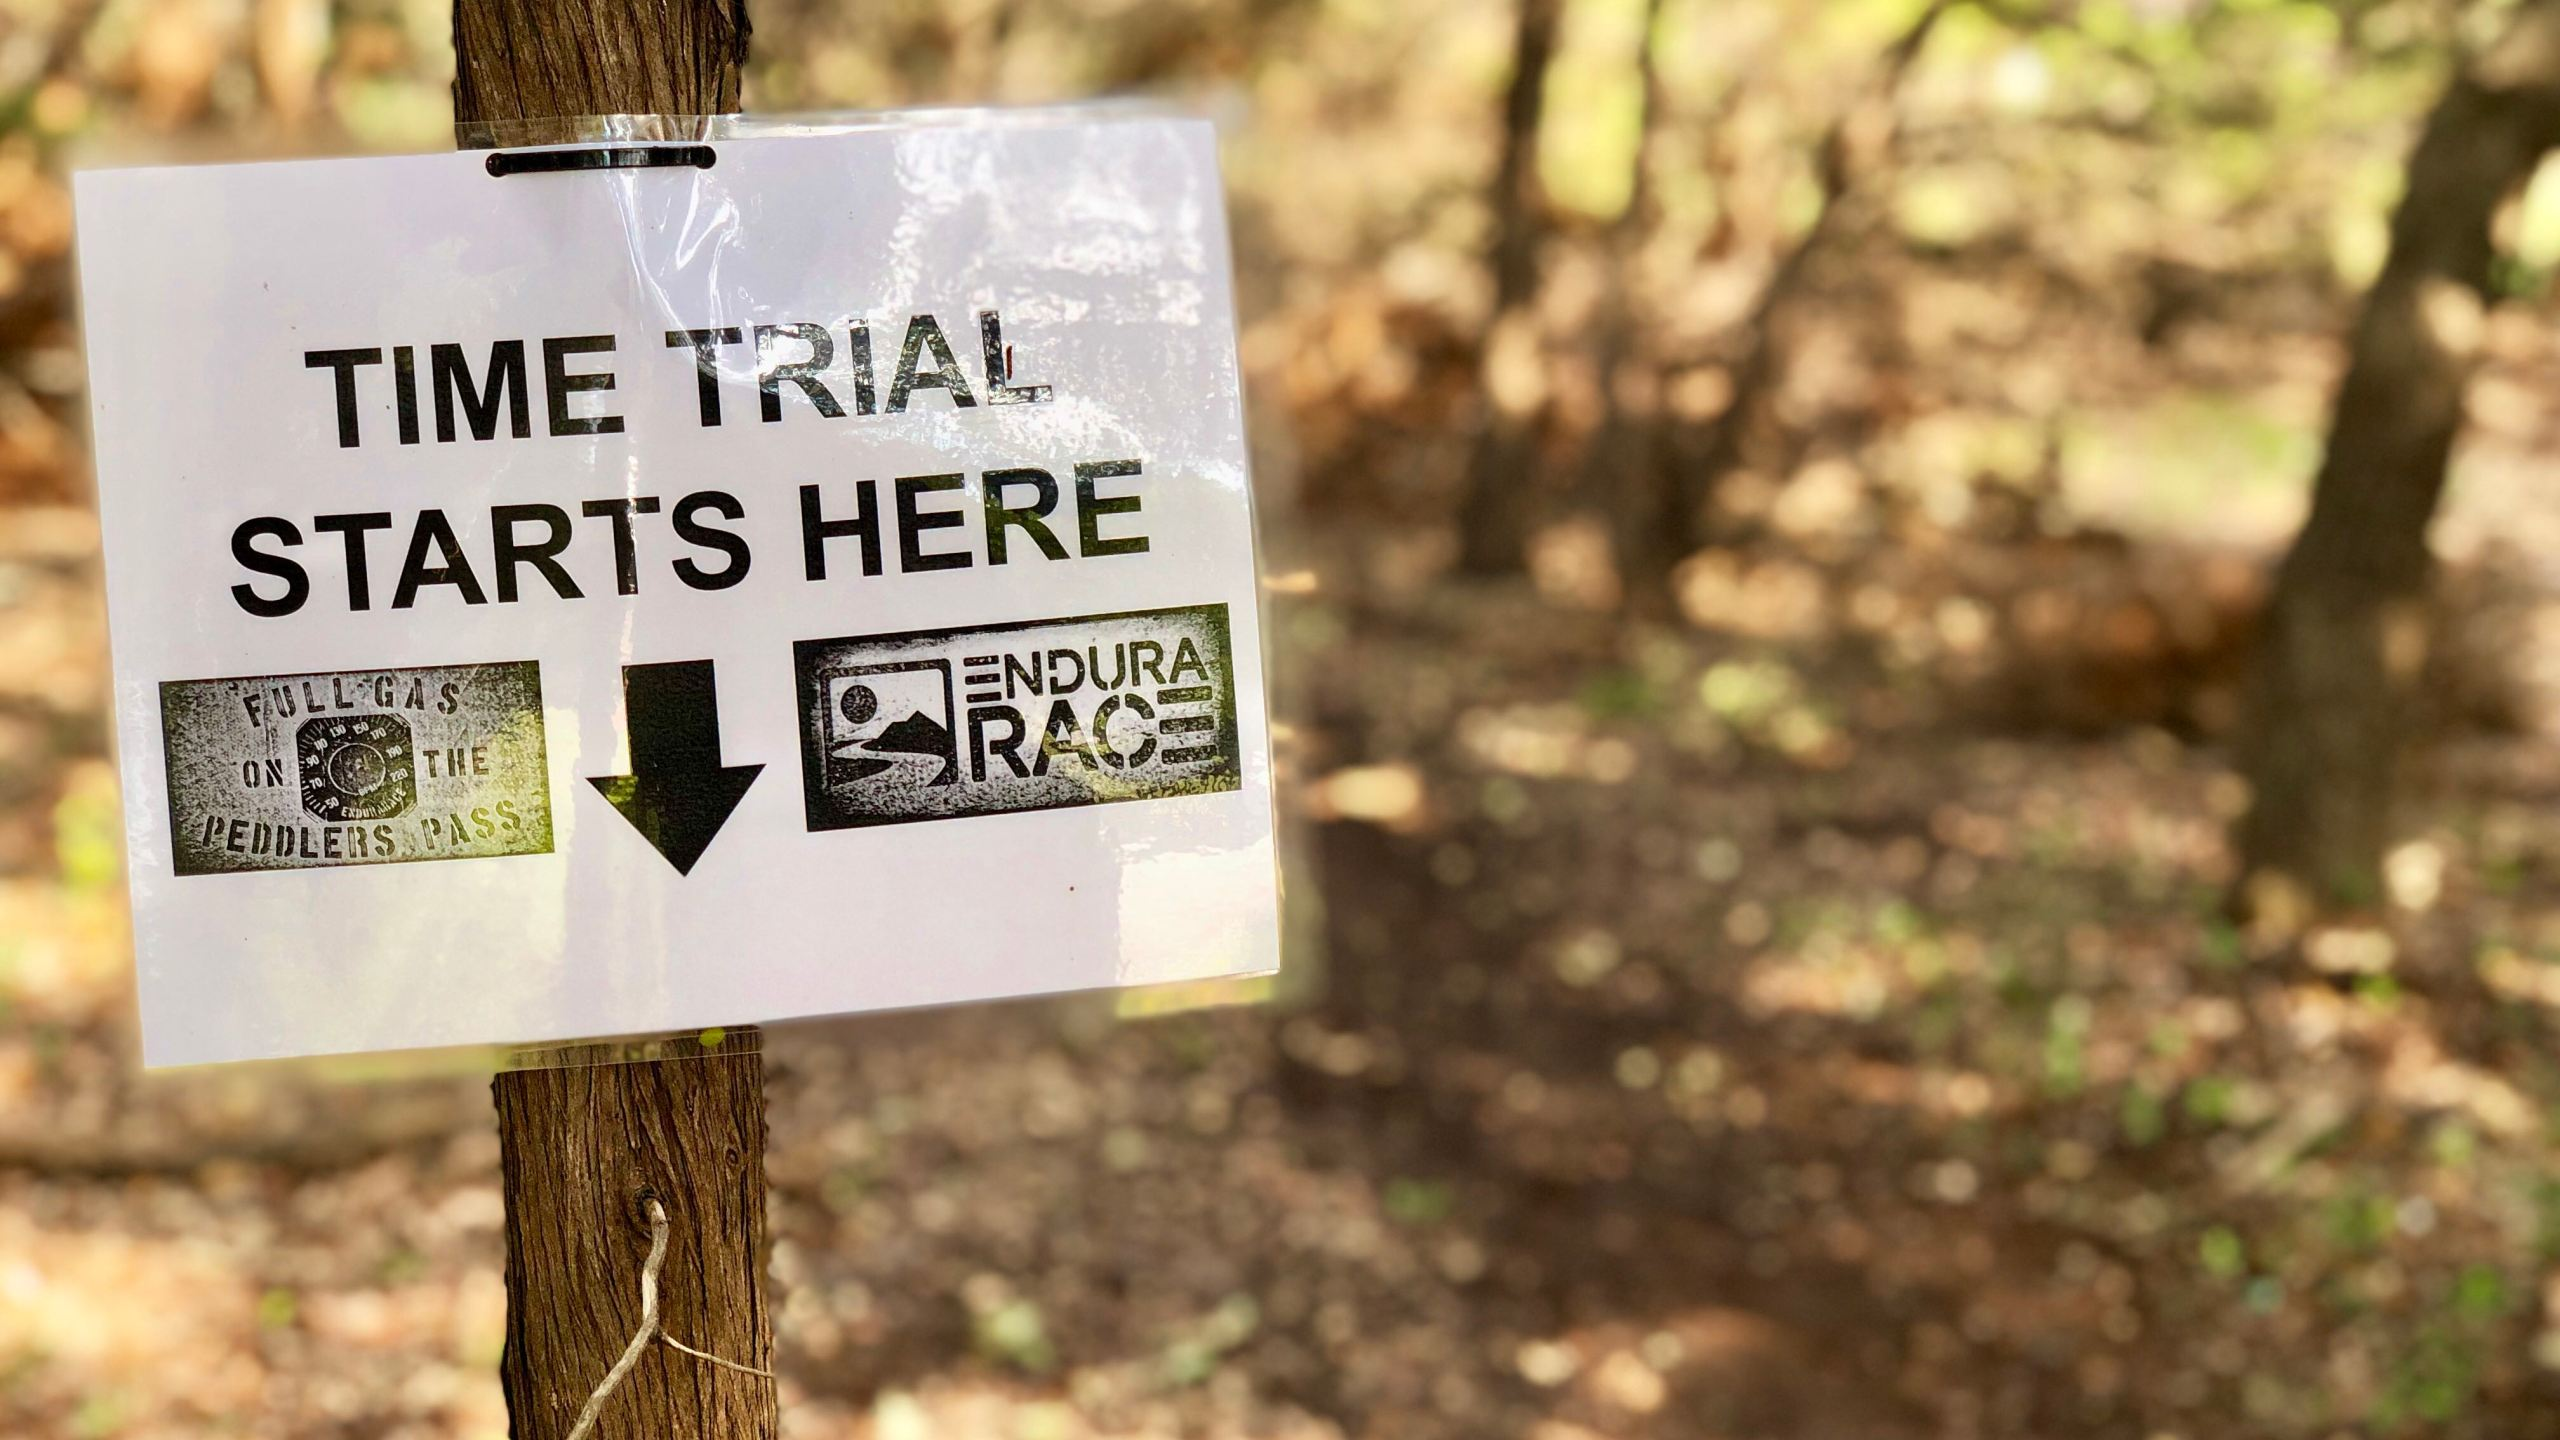 Time Trial Race at Brushy Creek on Peddler's Pass happening Saturday, June 15, 2019. (KXAN Photo: Candy Rodriguez)